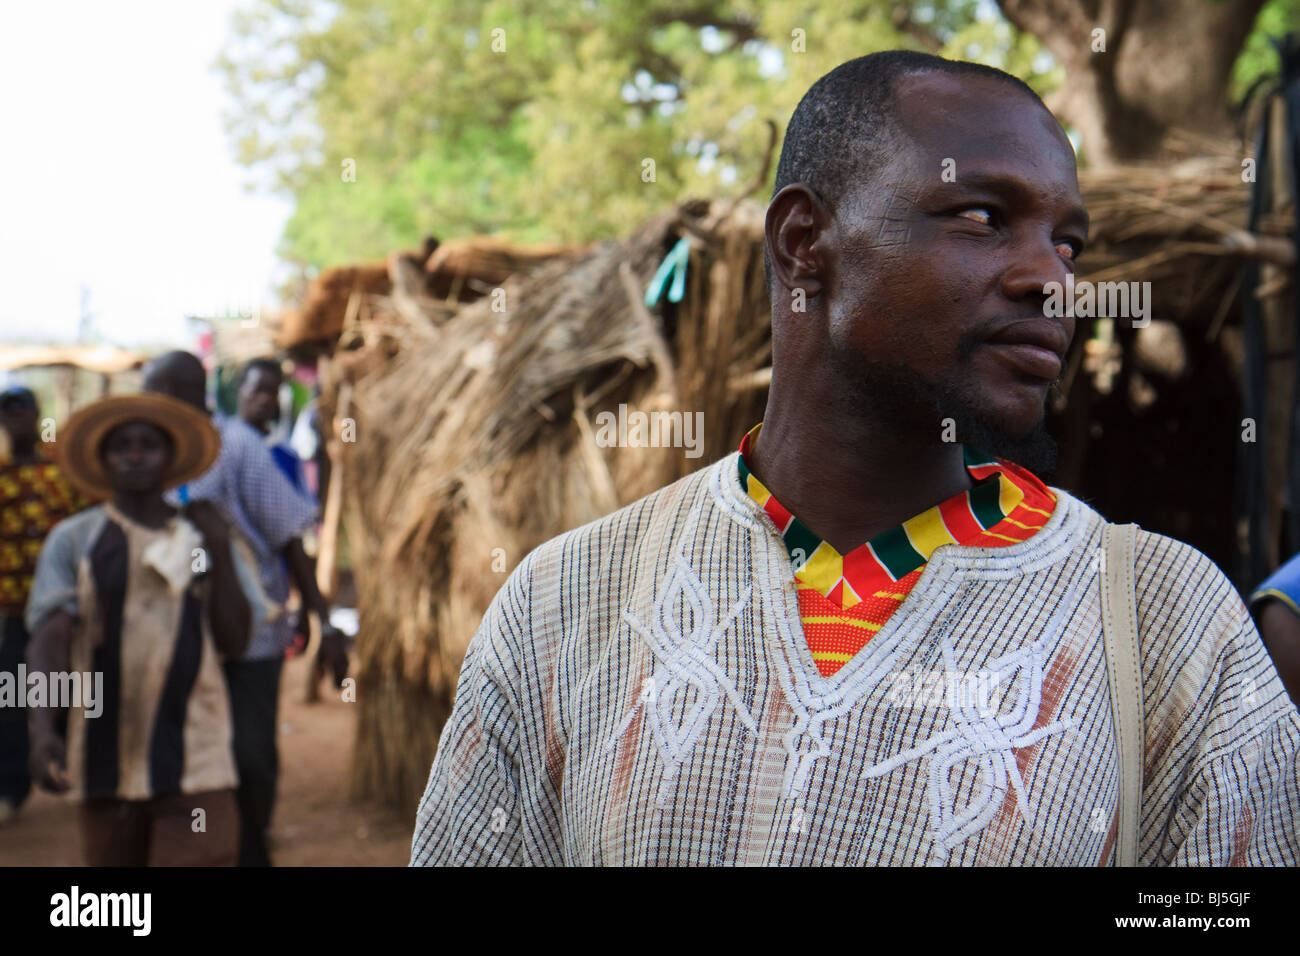 Africa Burkina Faso Imasgo Younger Men - Stock Image